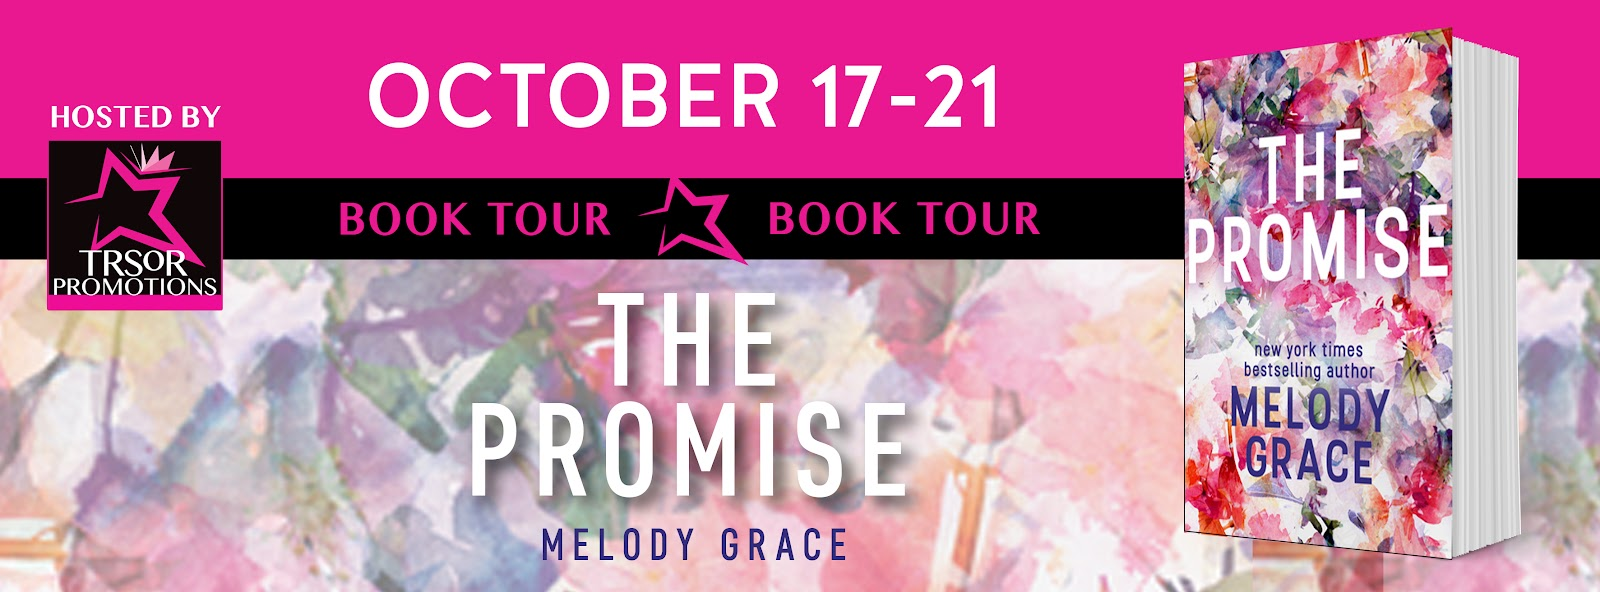 THE_PROMISE_BOOK_TOUR.jpg